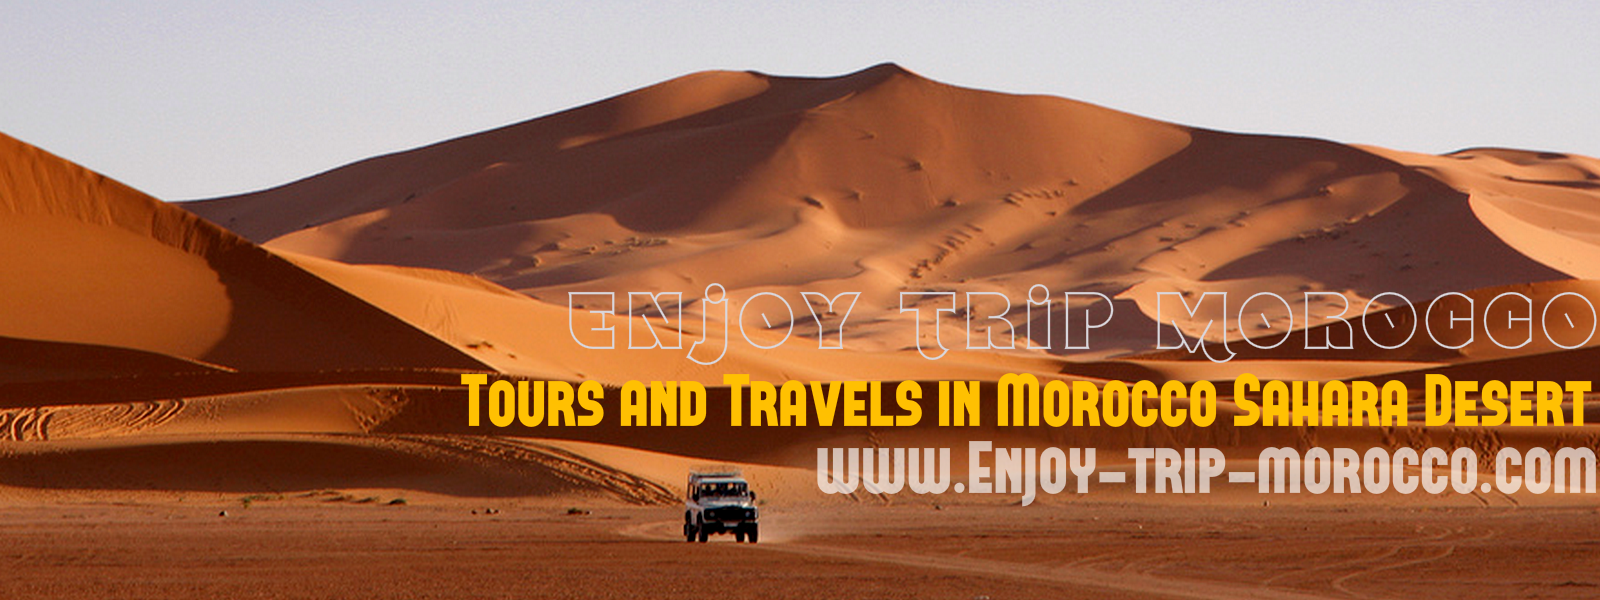 Tour photo of http://enjoy-trip-morocco.com/marrakech-tour-to-merzouga-3-days/